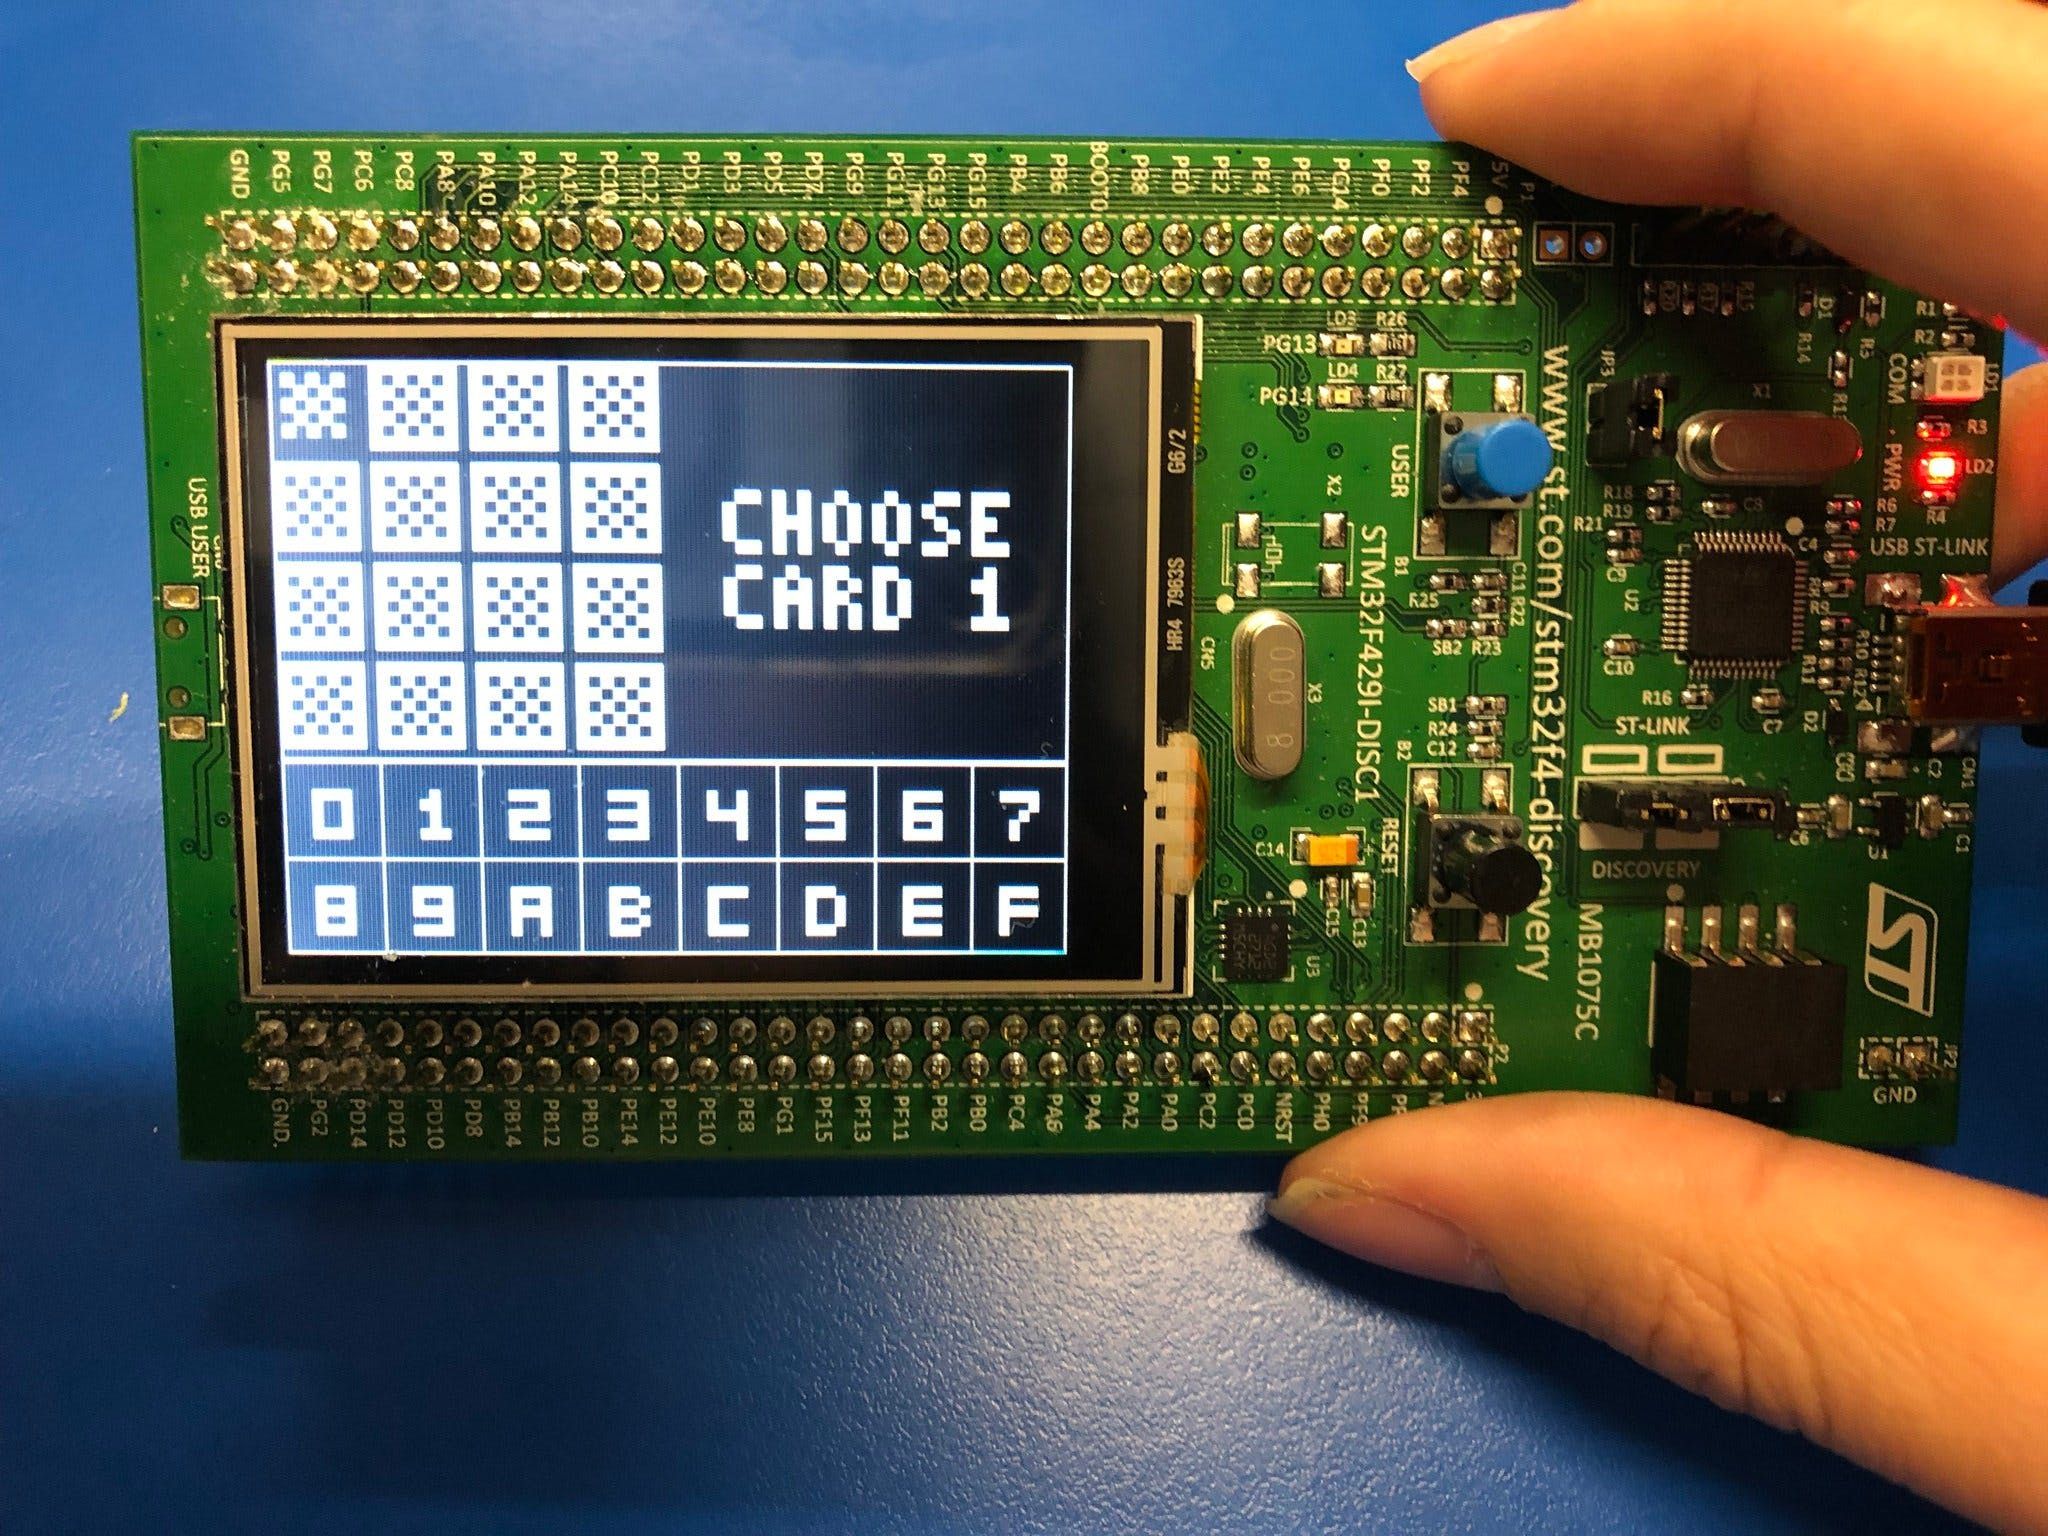 Chip-8 Emulator on STM32F429-Discovery